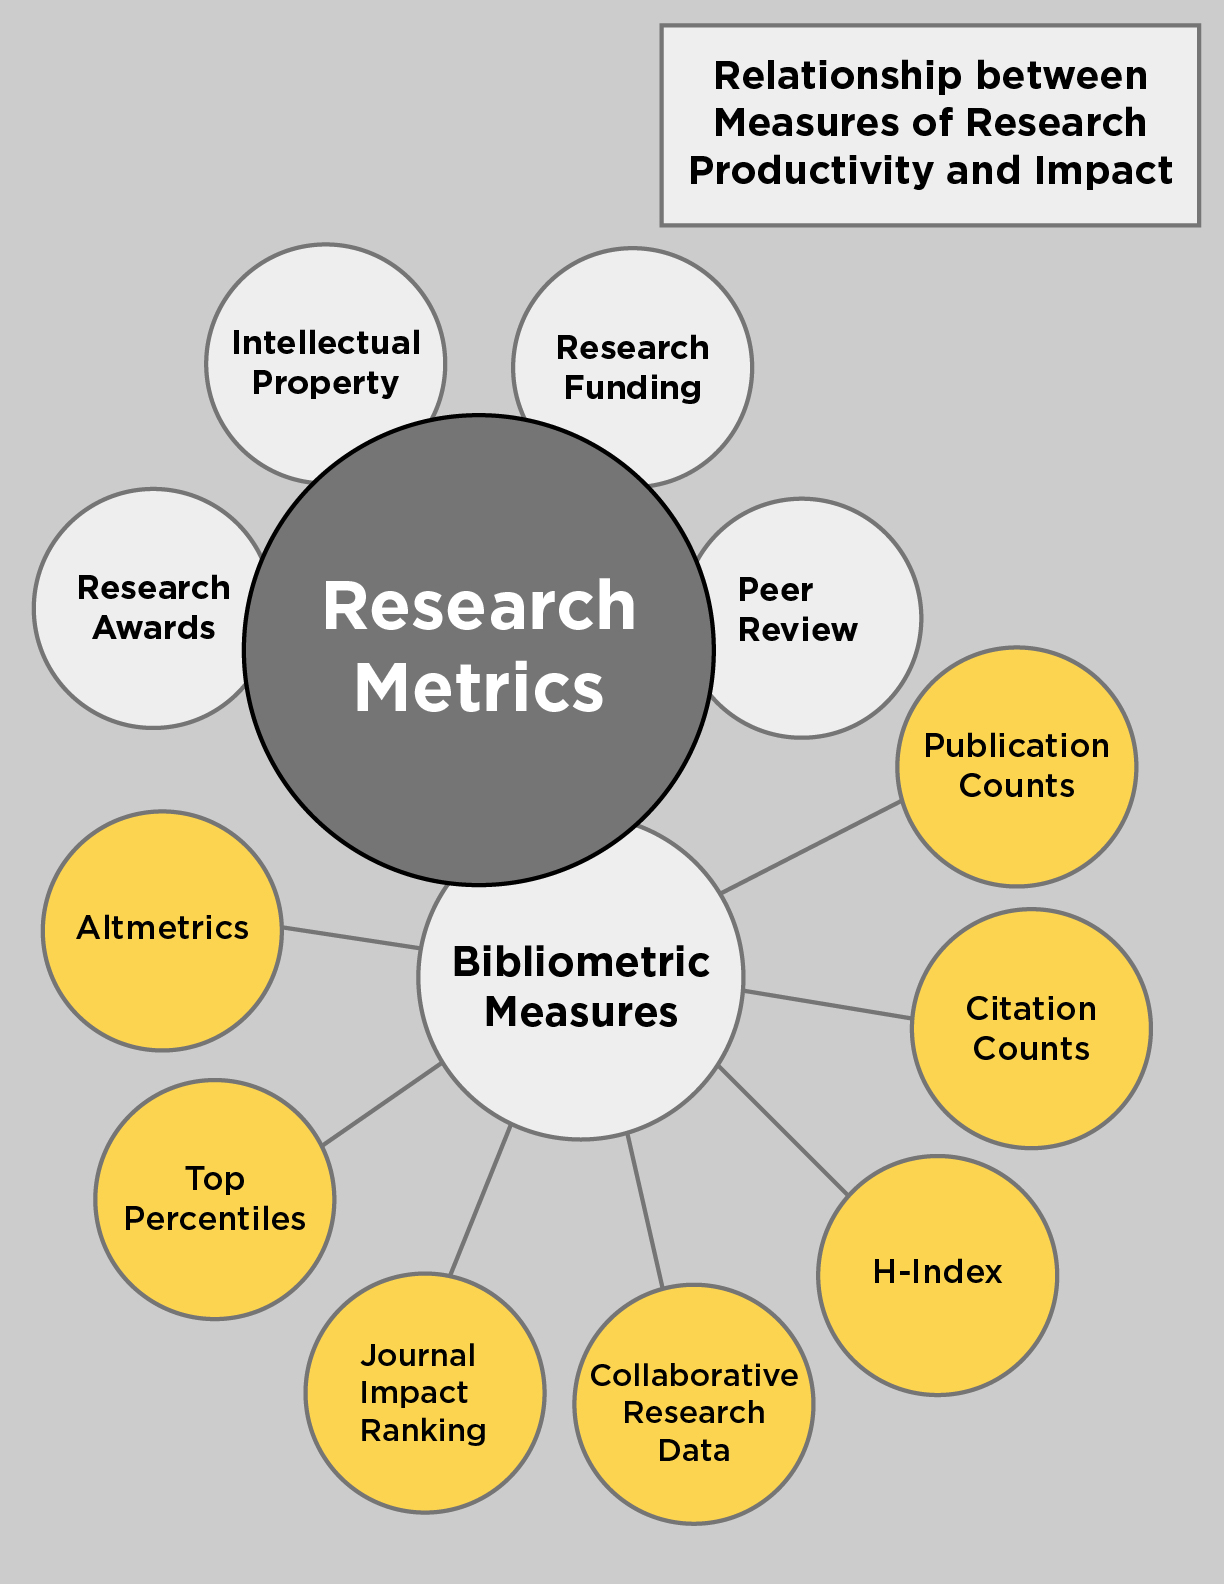 Relationship between measures of research productivity and impact, shown by bibliometric measures and research metrics.